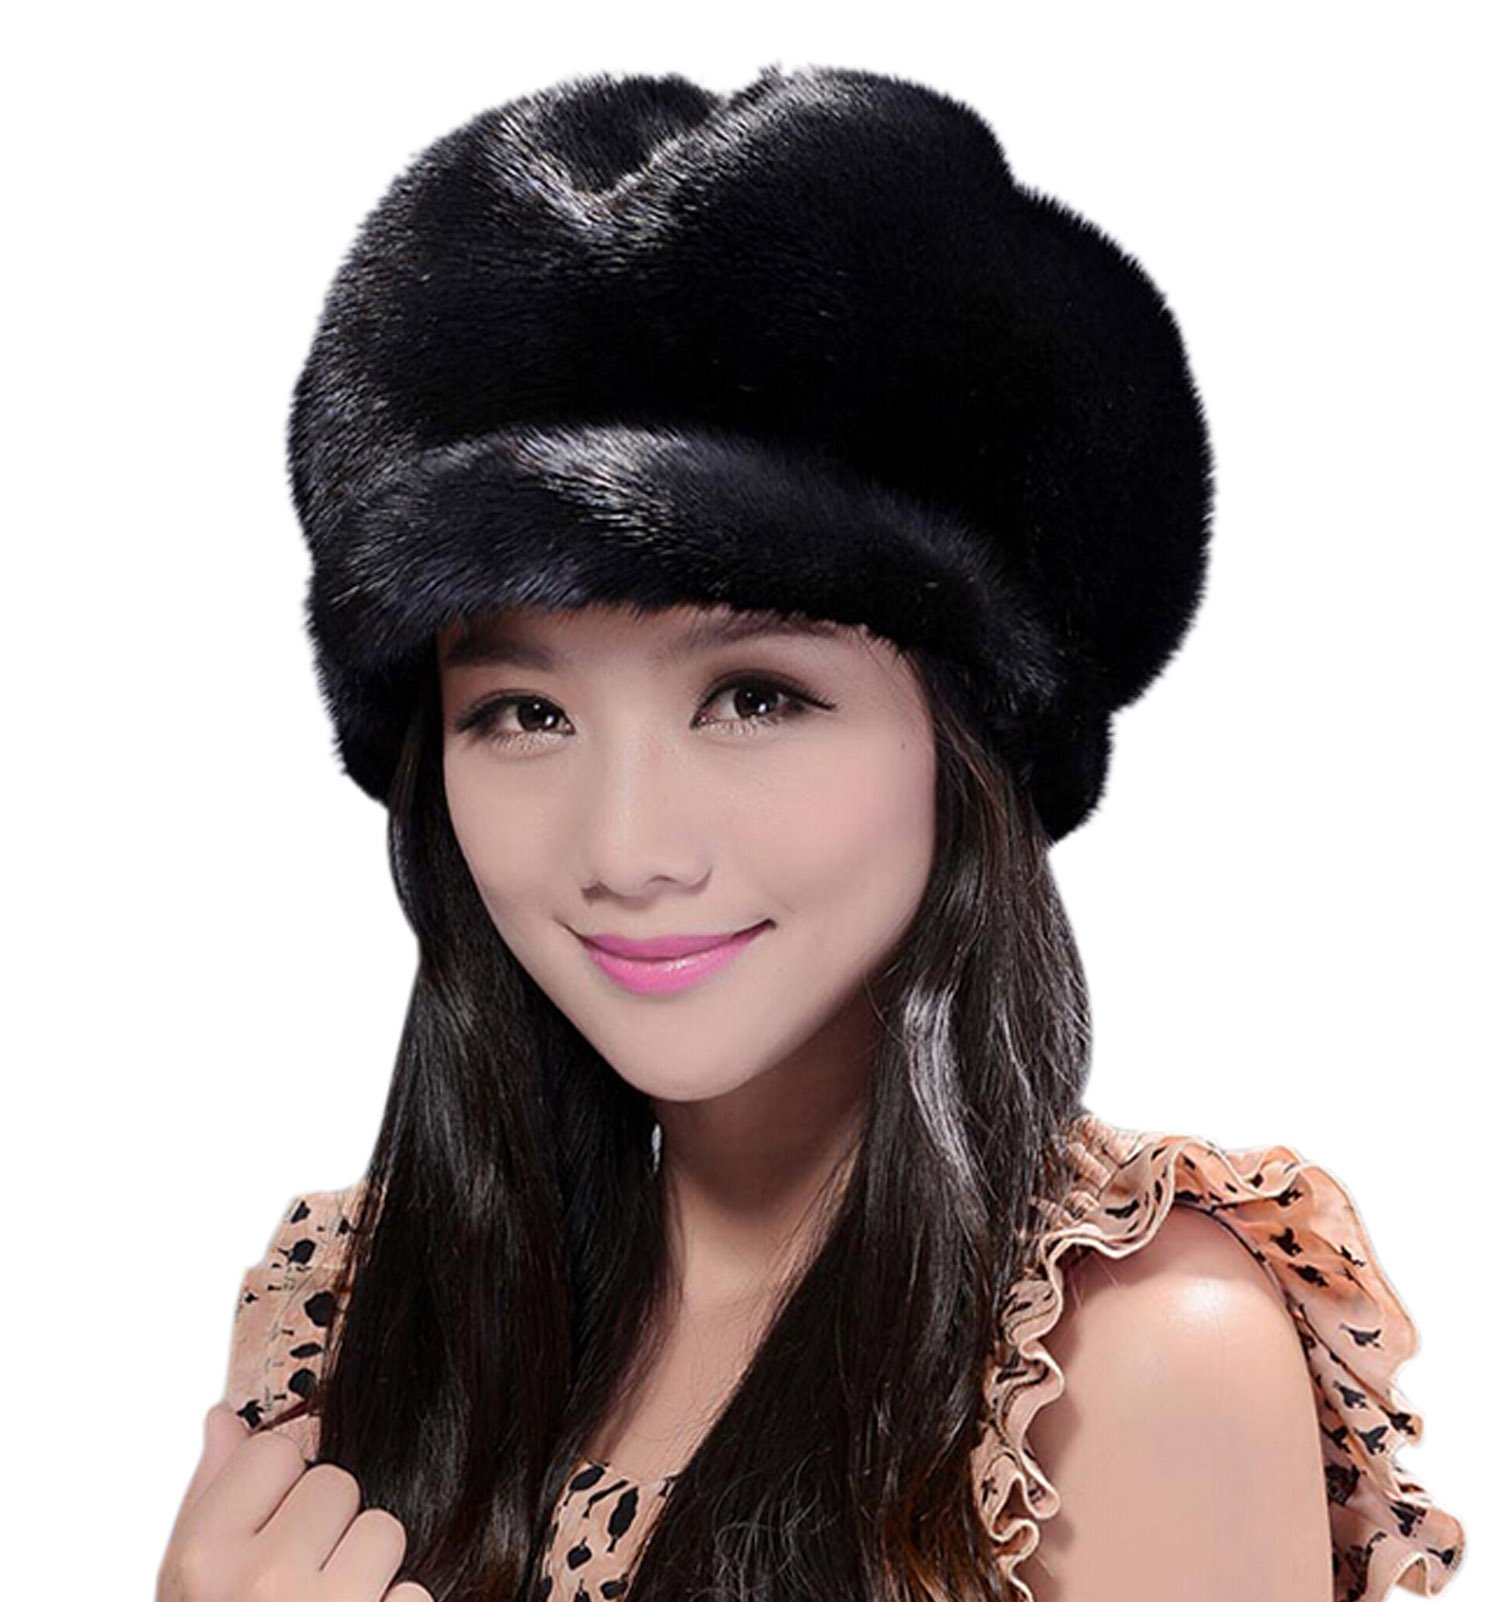 Easting New Fashion Women's 100% Real Genuine Mink Fur Cap (Black)